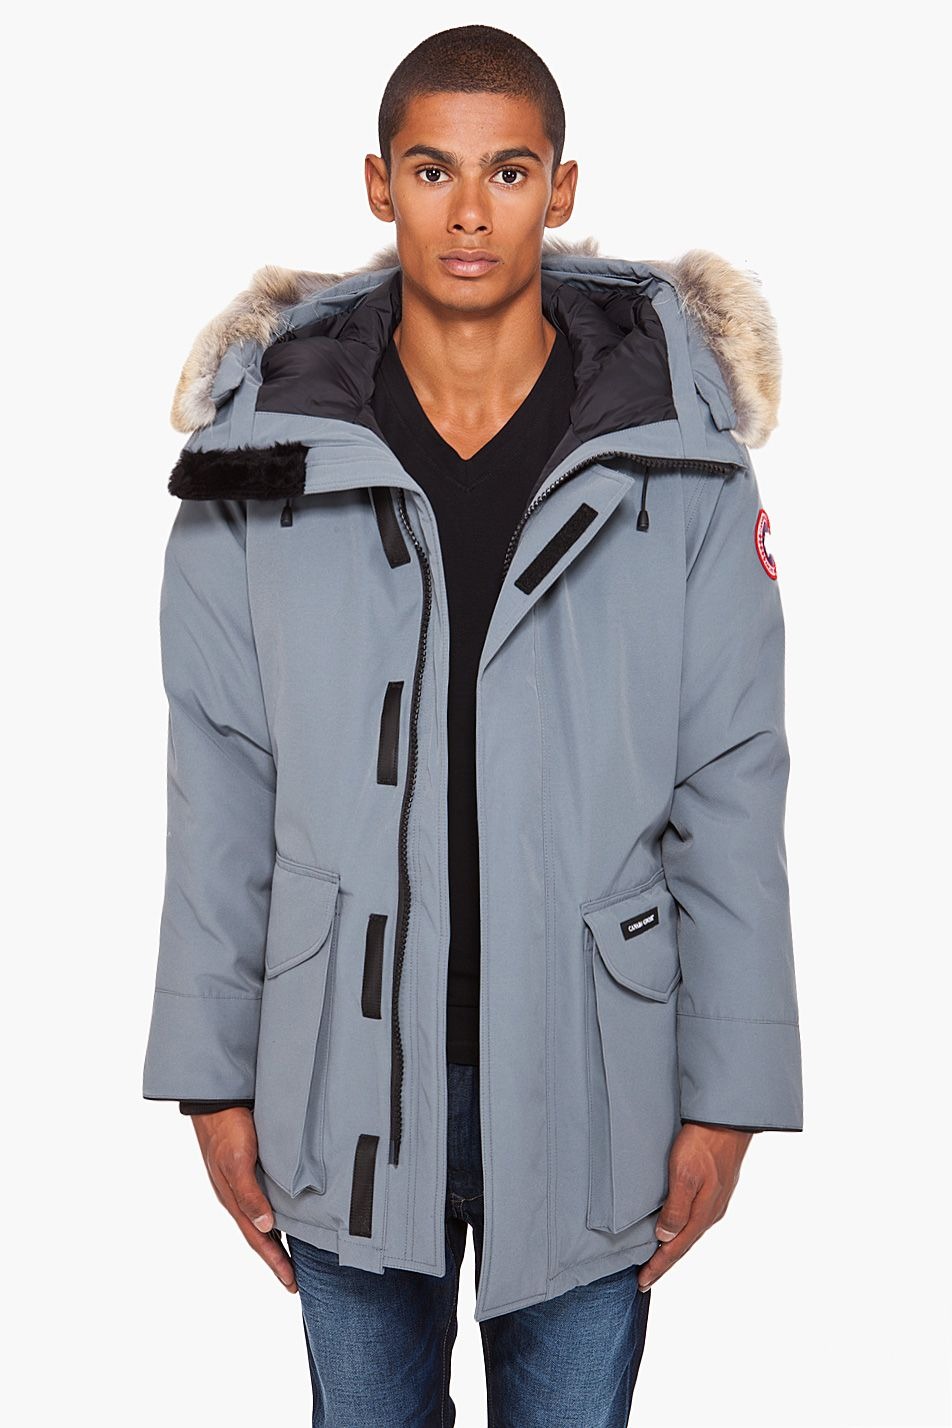 CANADA GOOSE - Grey Coyote Fur Hood Ontario Parka Long sleeve down parka in grey. Black cinch belt and removable coyote fur ruff at drawcord hood.